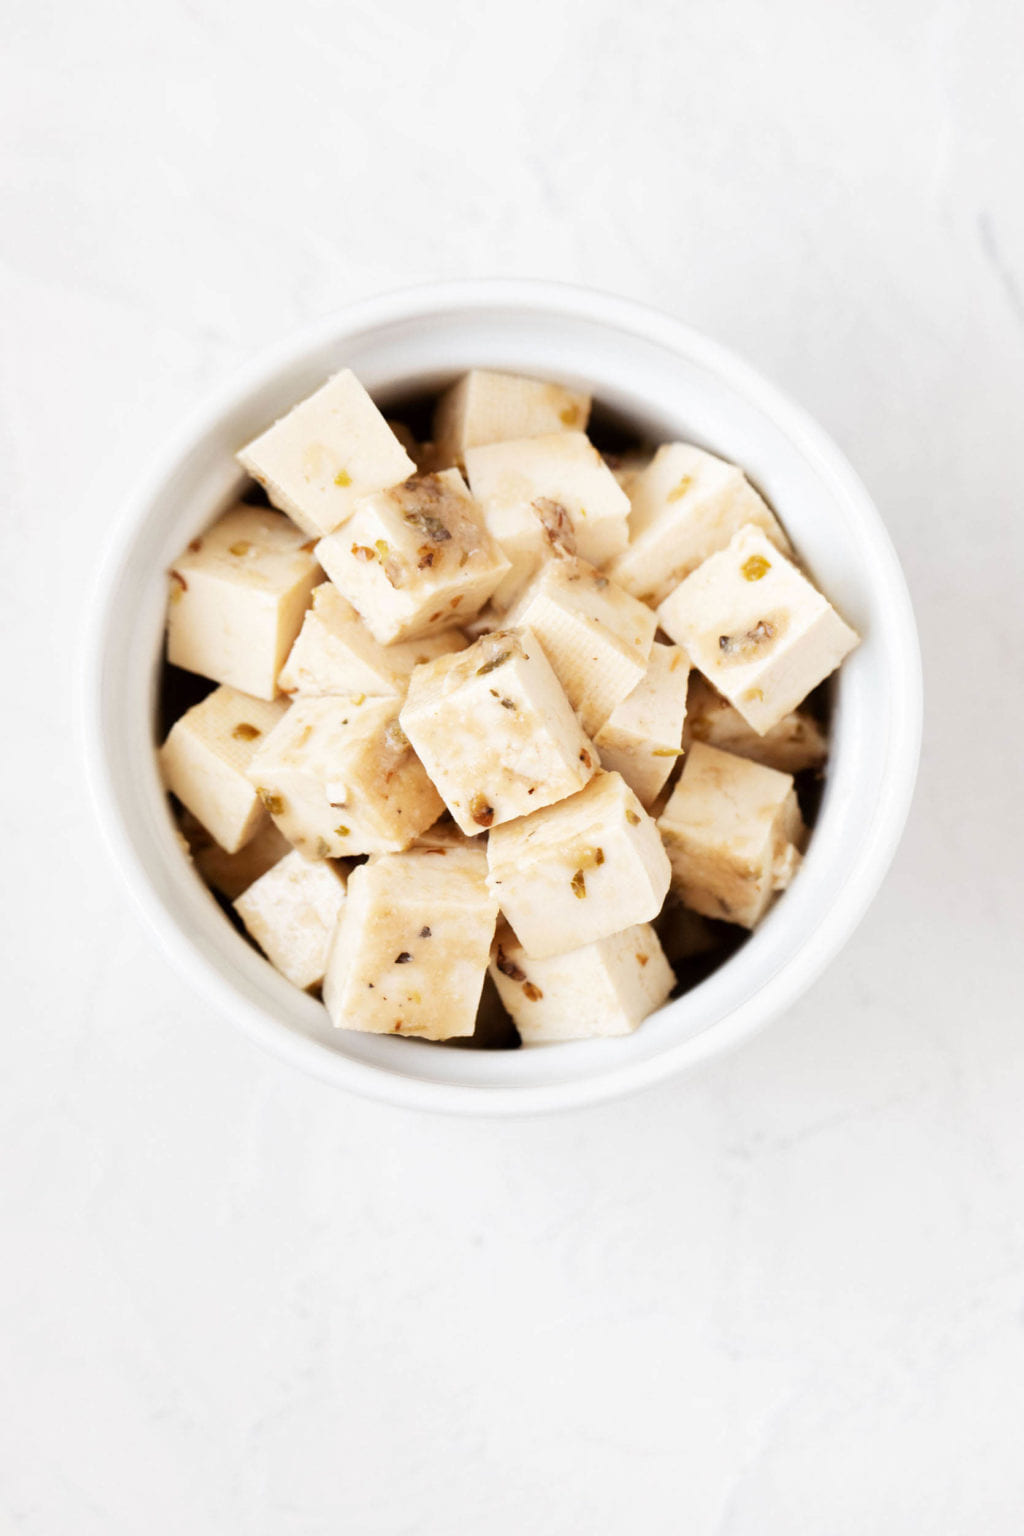 A small white round ramekin is filled with pieces of marinated tofu and dried herbs. It sits on a white background.